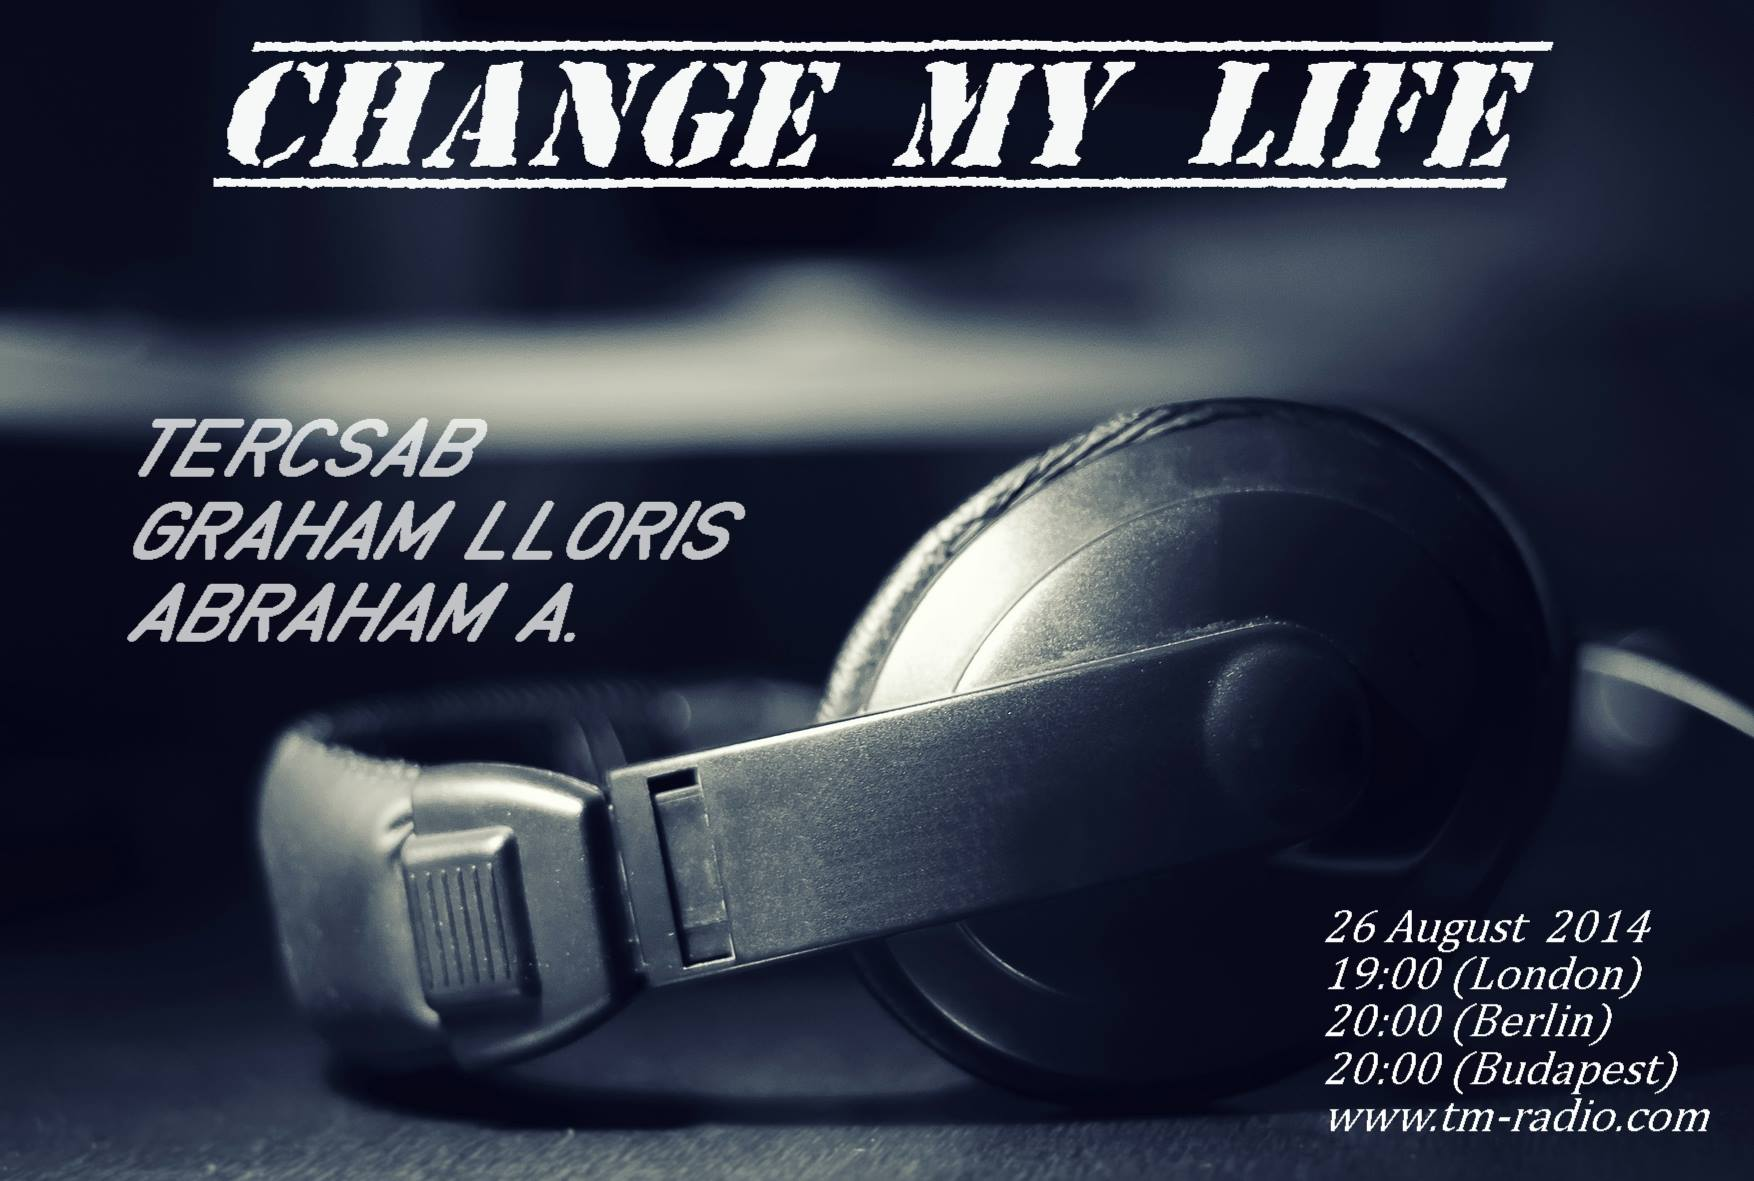 download → Tercsab, Graham Lloris, Abraham A. - Change My Life vol.25. on TM Radio - 26-Aug-2014